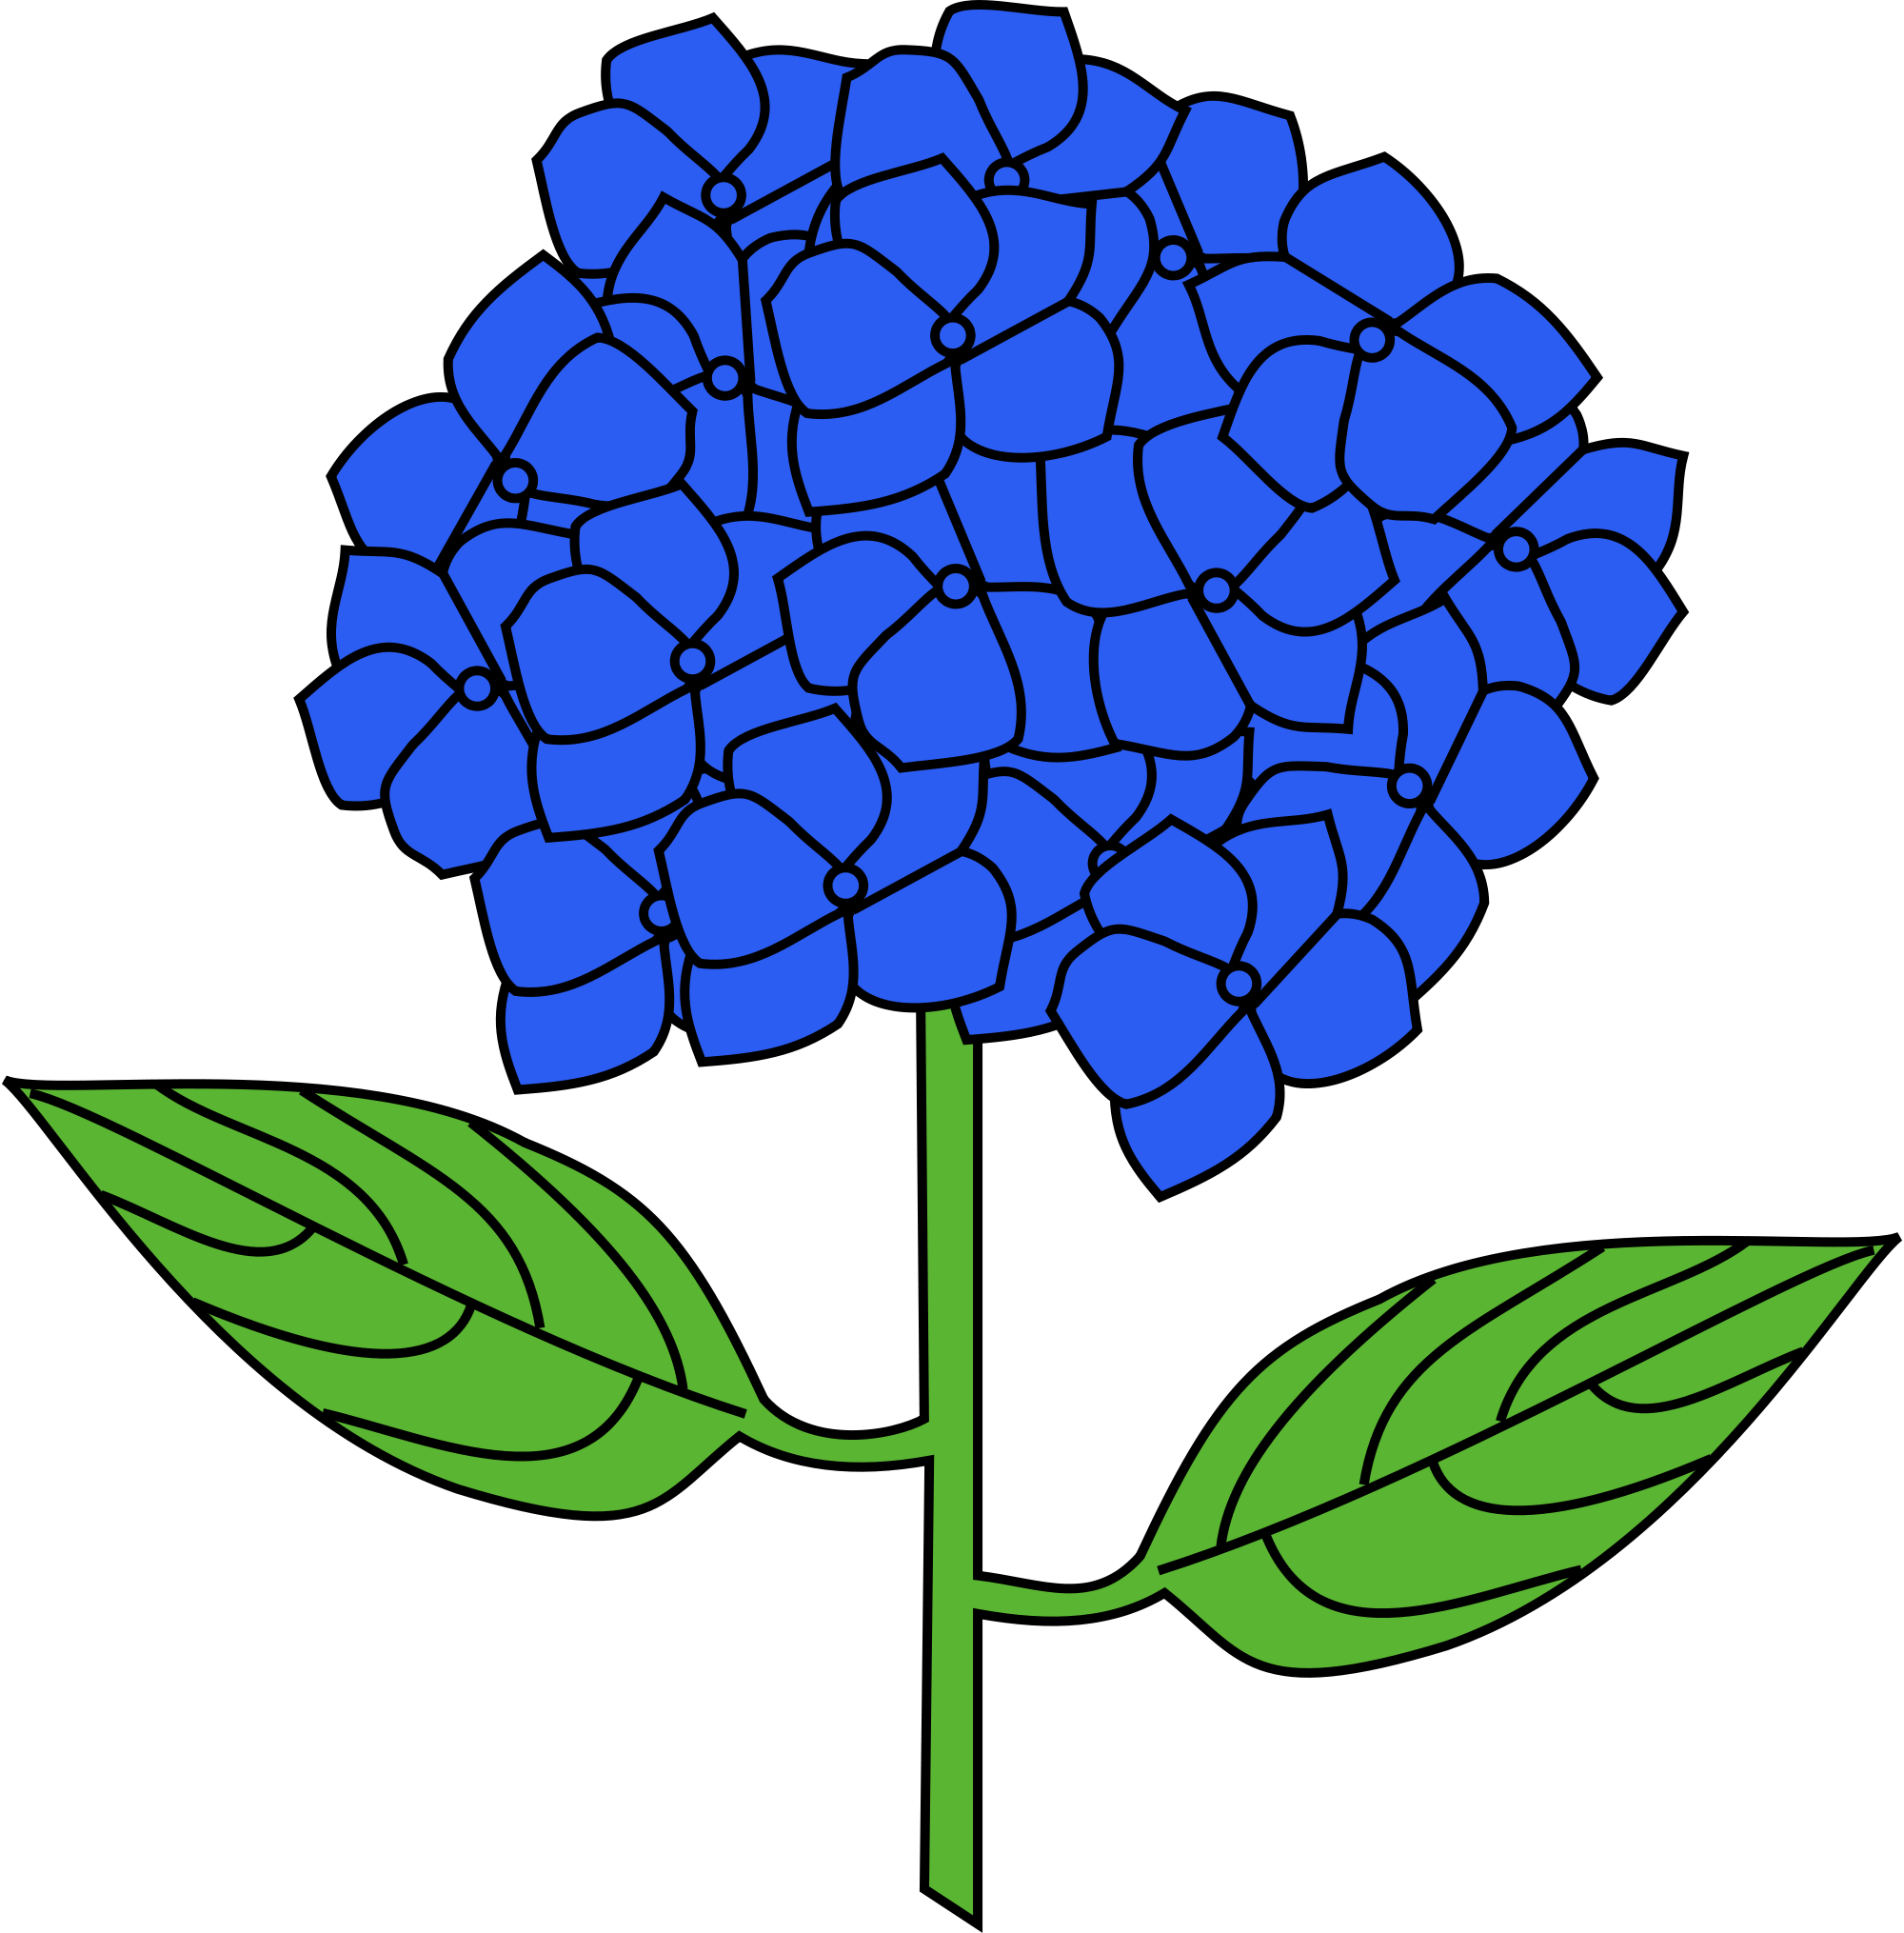 File:Meuble héraldique Hortensia.svg.